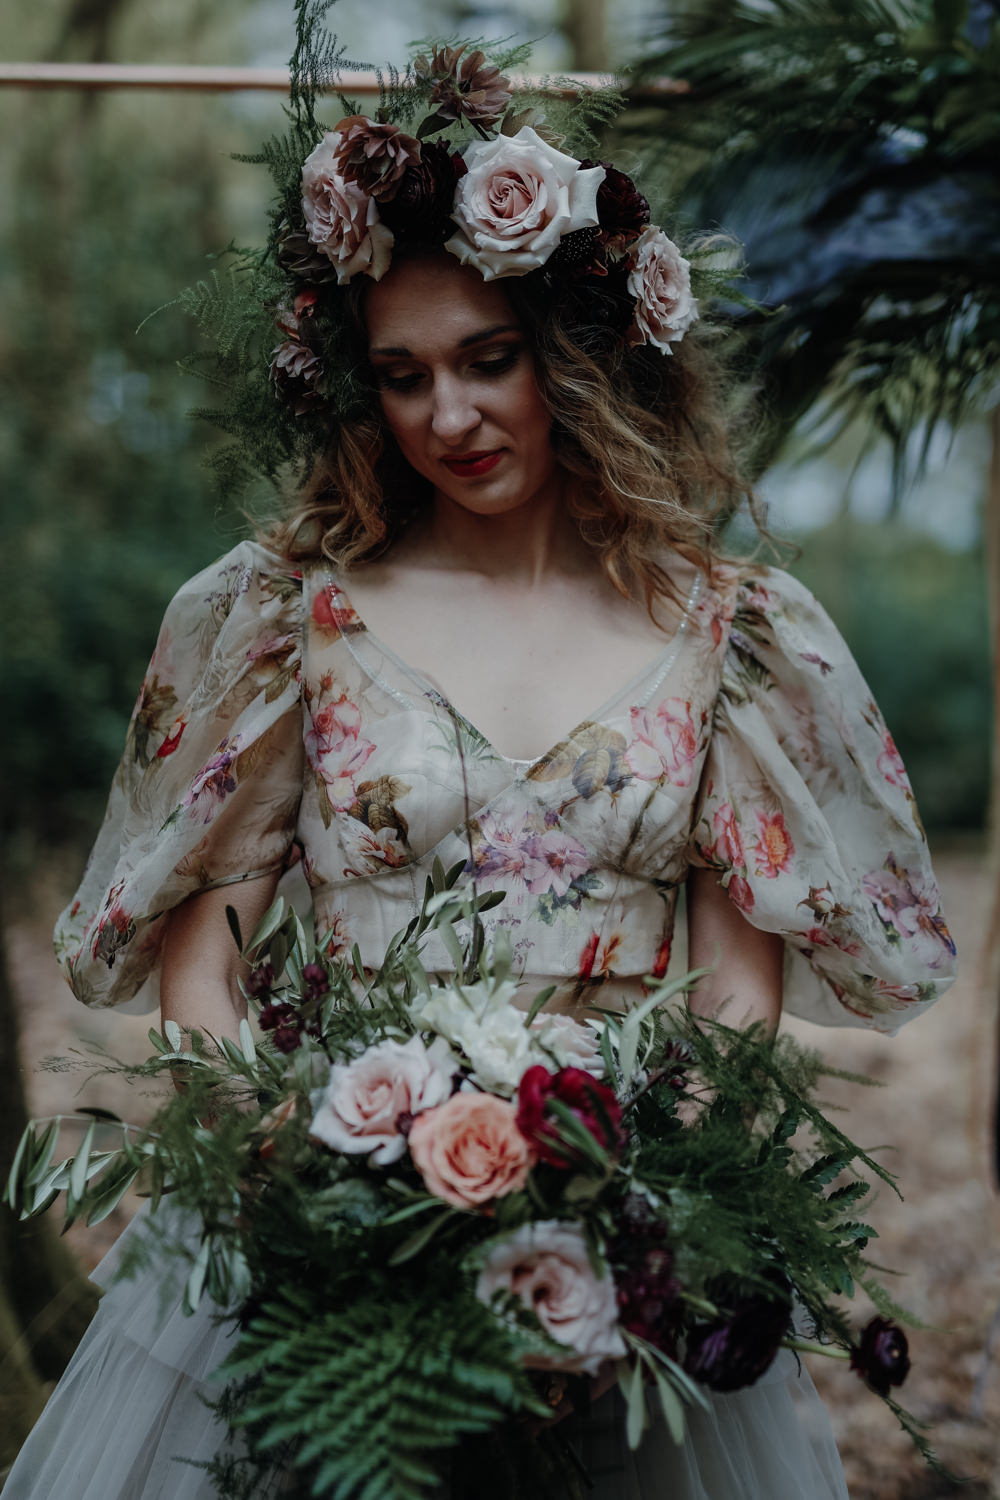 Bride Bridal Dress Gown Tulle Layer Skirt Balloon Sleeves Floral Top Bouquet Wild Large Bride Bridal Fern Foliage Rose Greenery Flower Crown Modern Gothic Woods Wedding Ideas Ayelle Photography